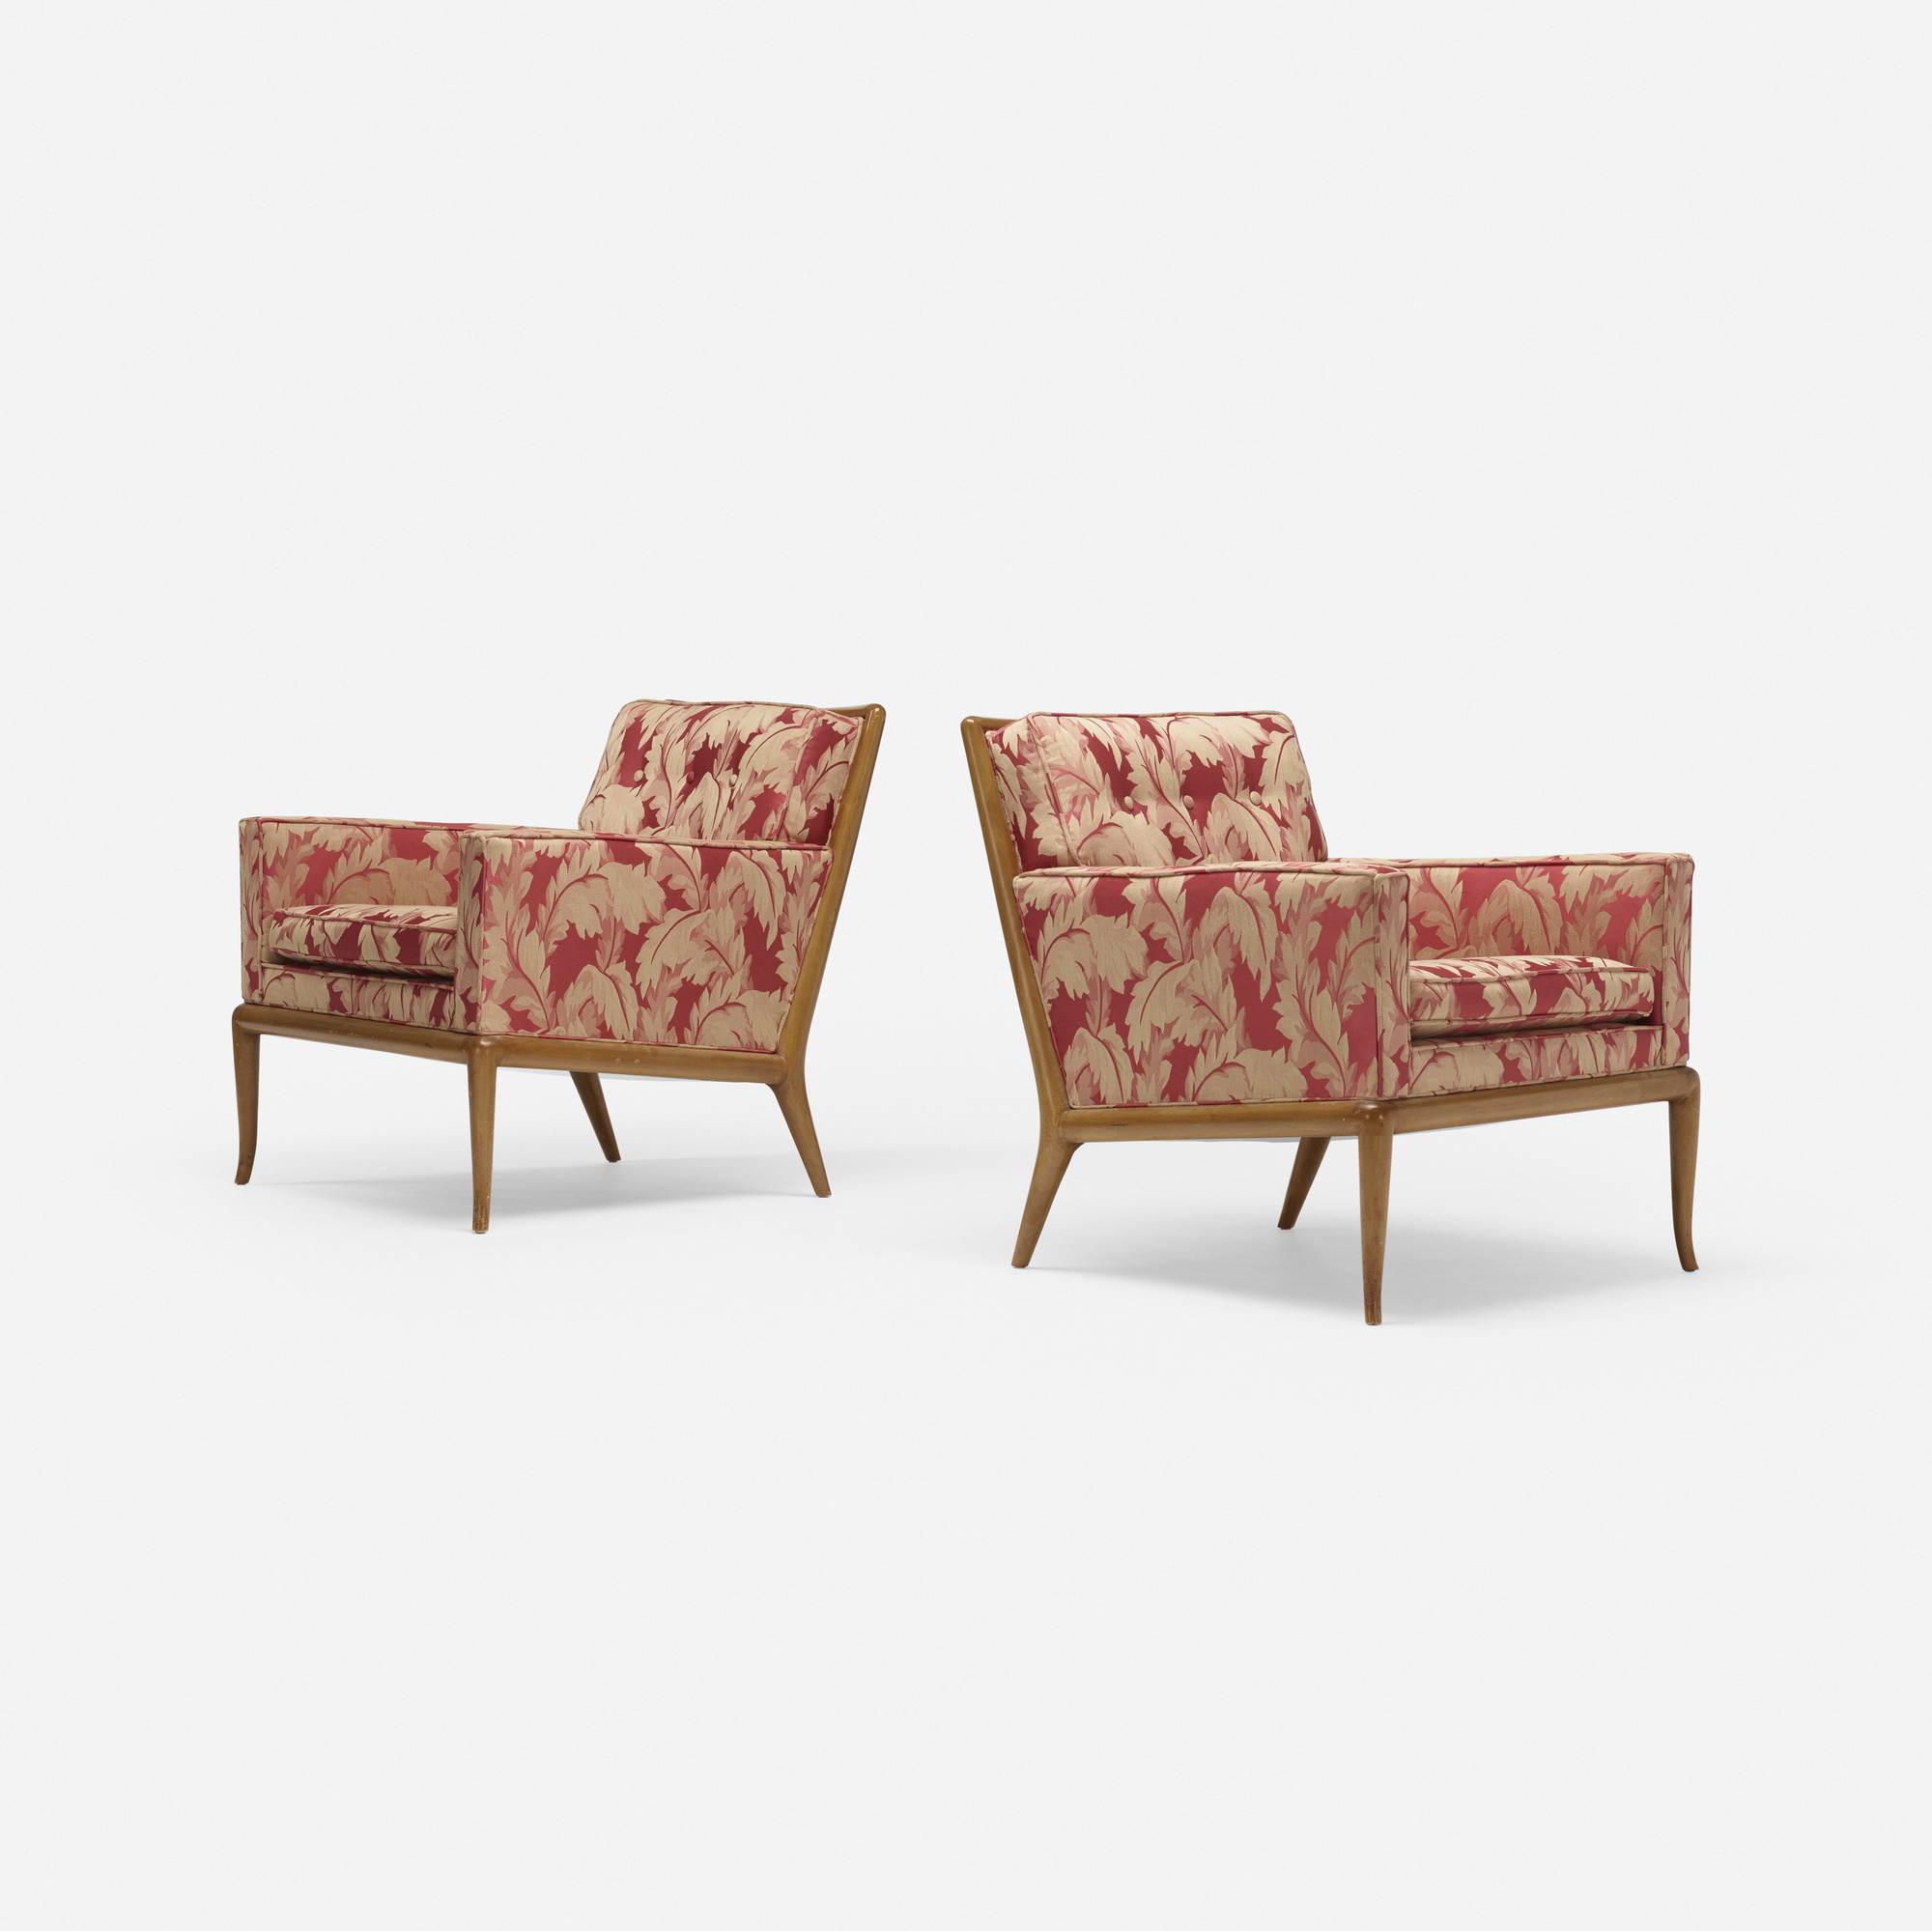 691: T.H. Robsjohn-Gibbings / lounge chairs model WMP, pair (2 of 3)